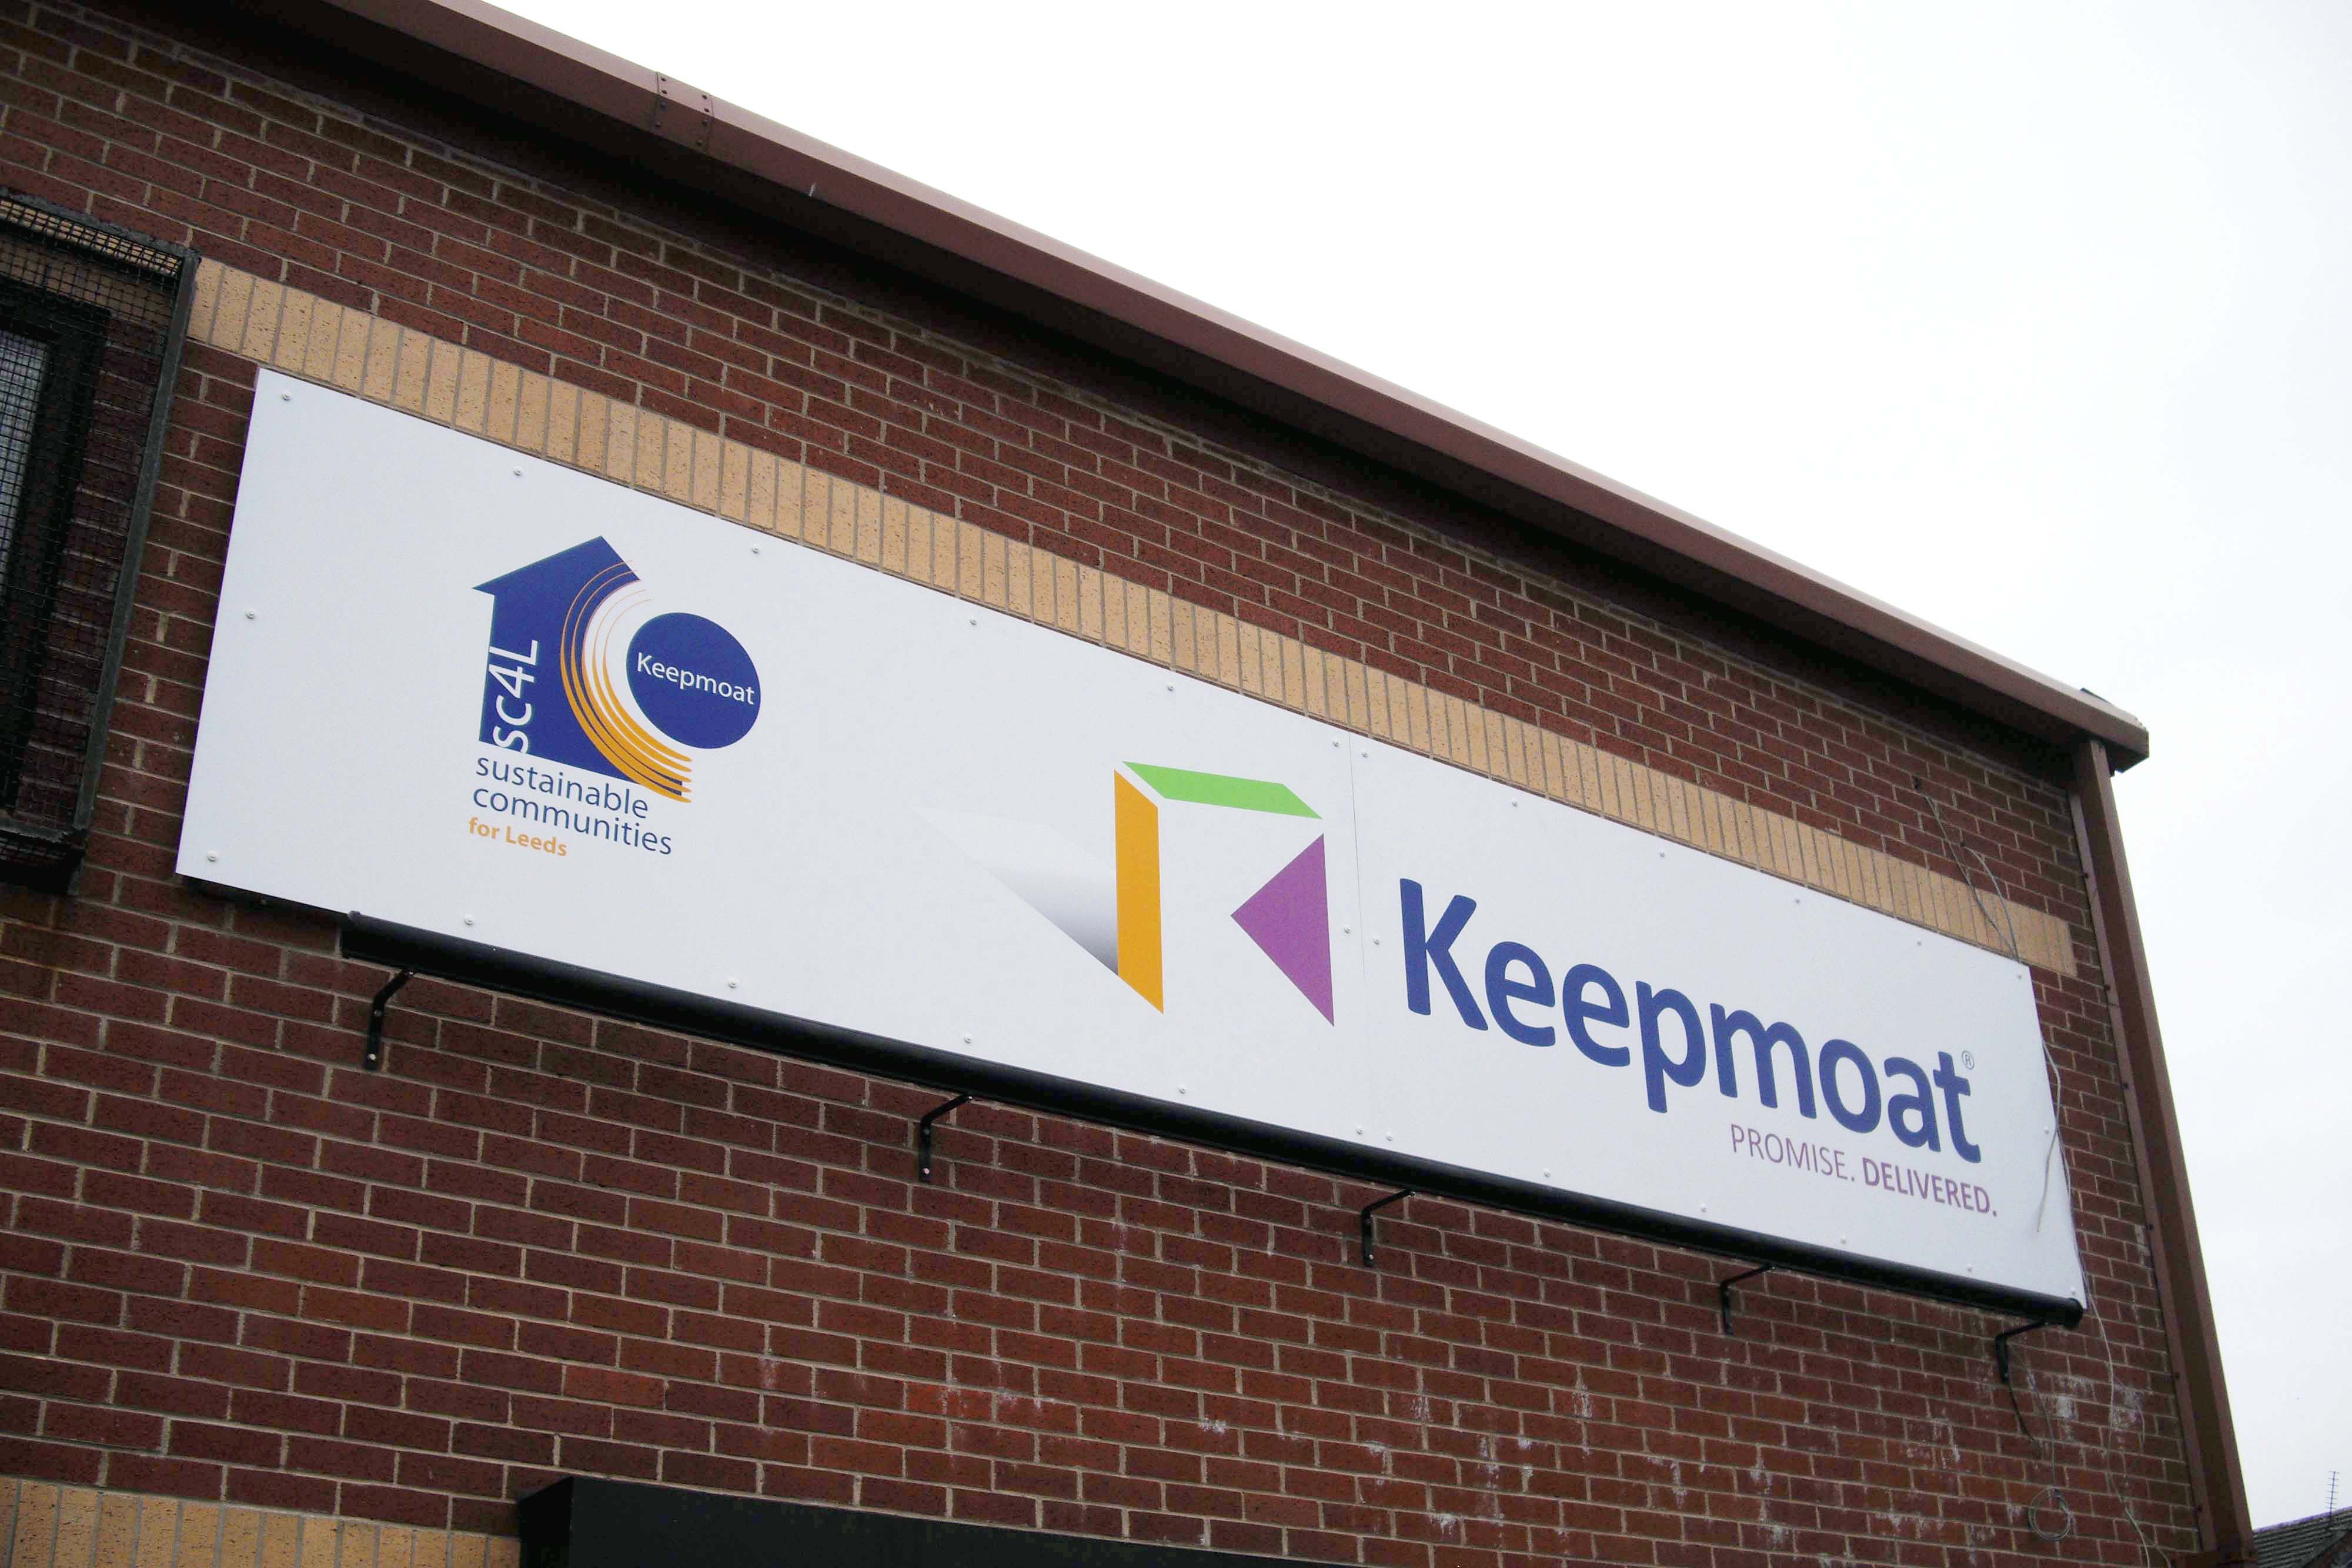 Commercial sign, Leeds, Keepmoat